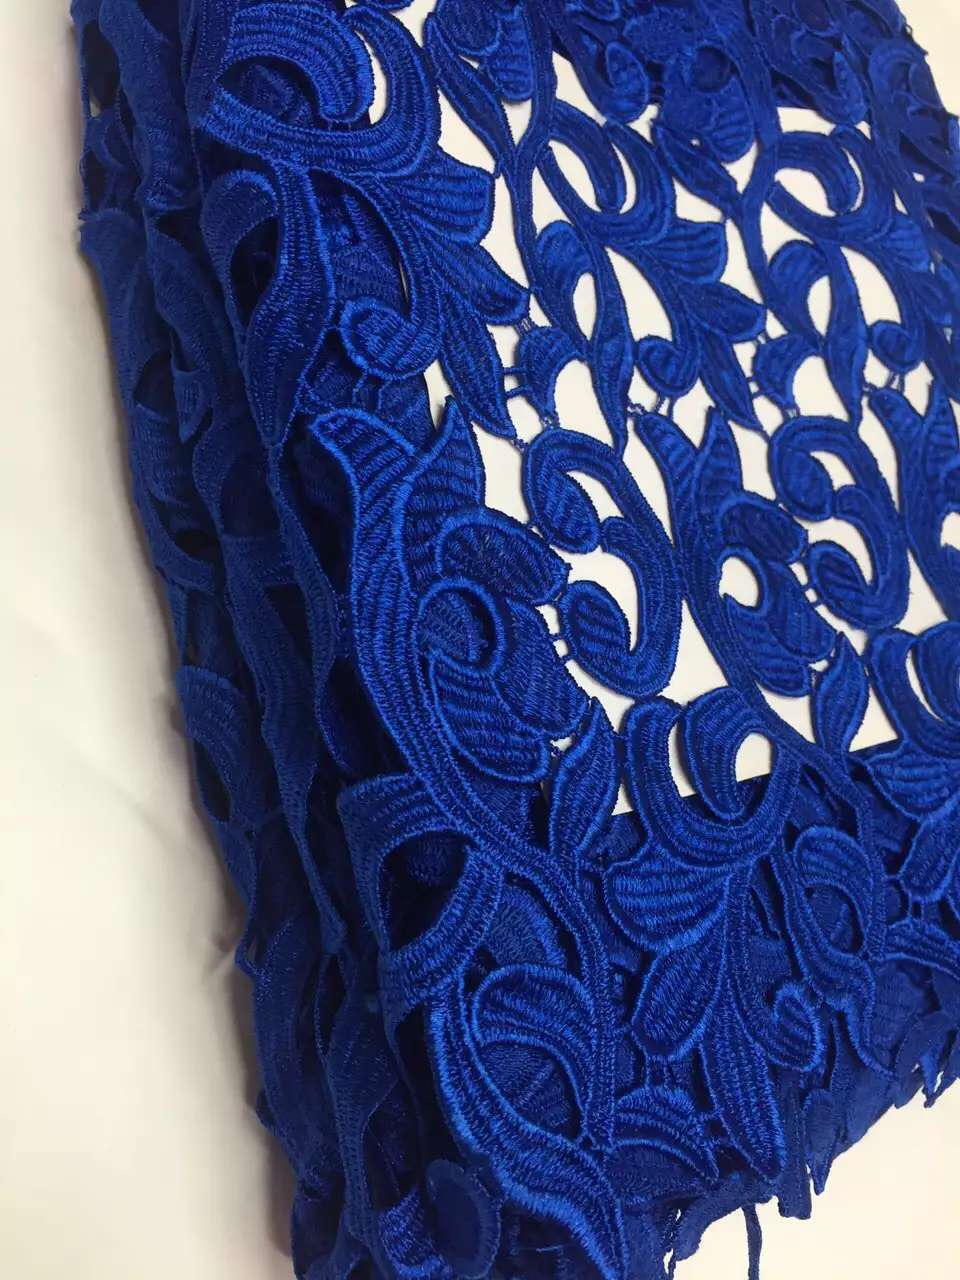 African soluble quality lace,high